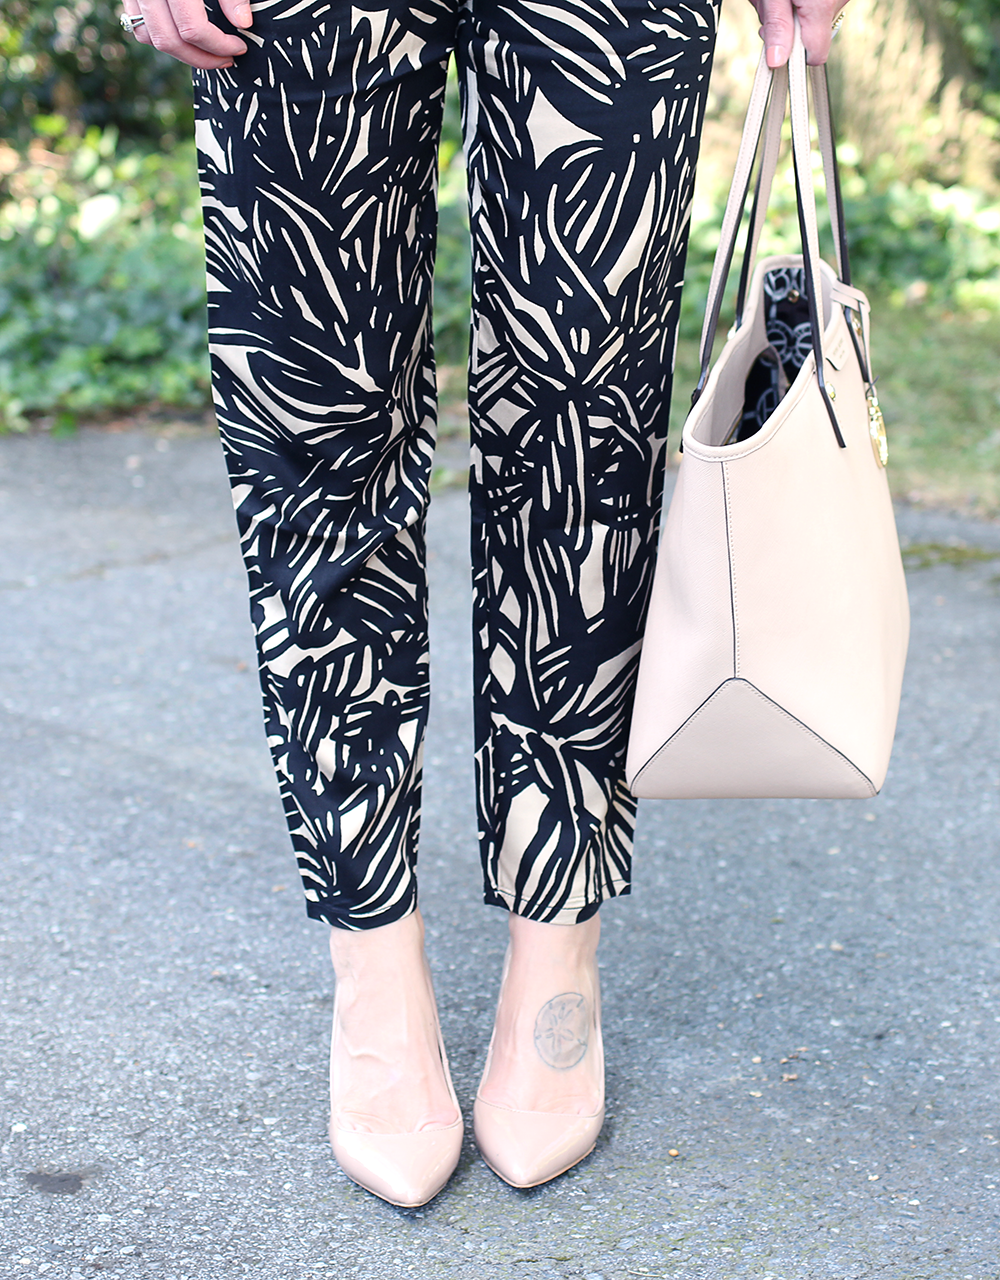 Classic Nude Heels, Summer to Fall Outfit, Patterned Work Pants